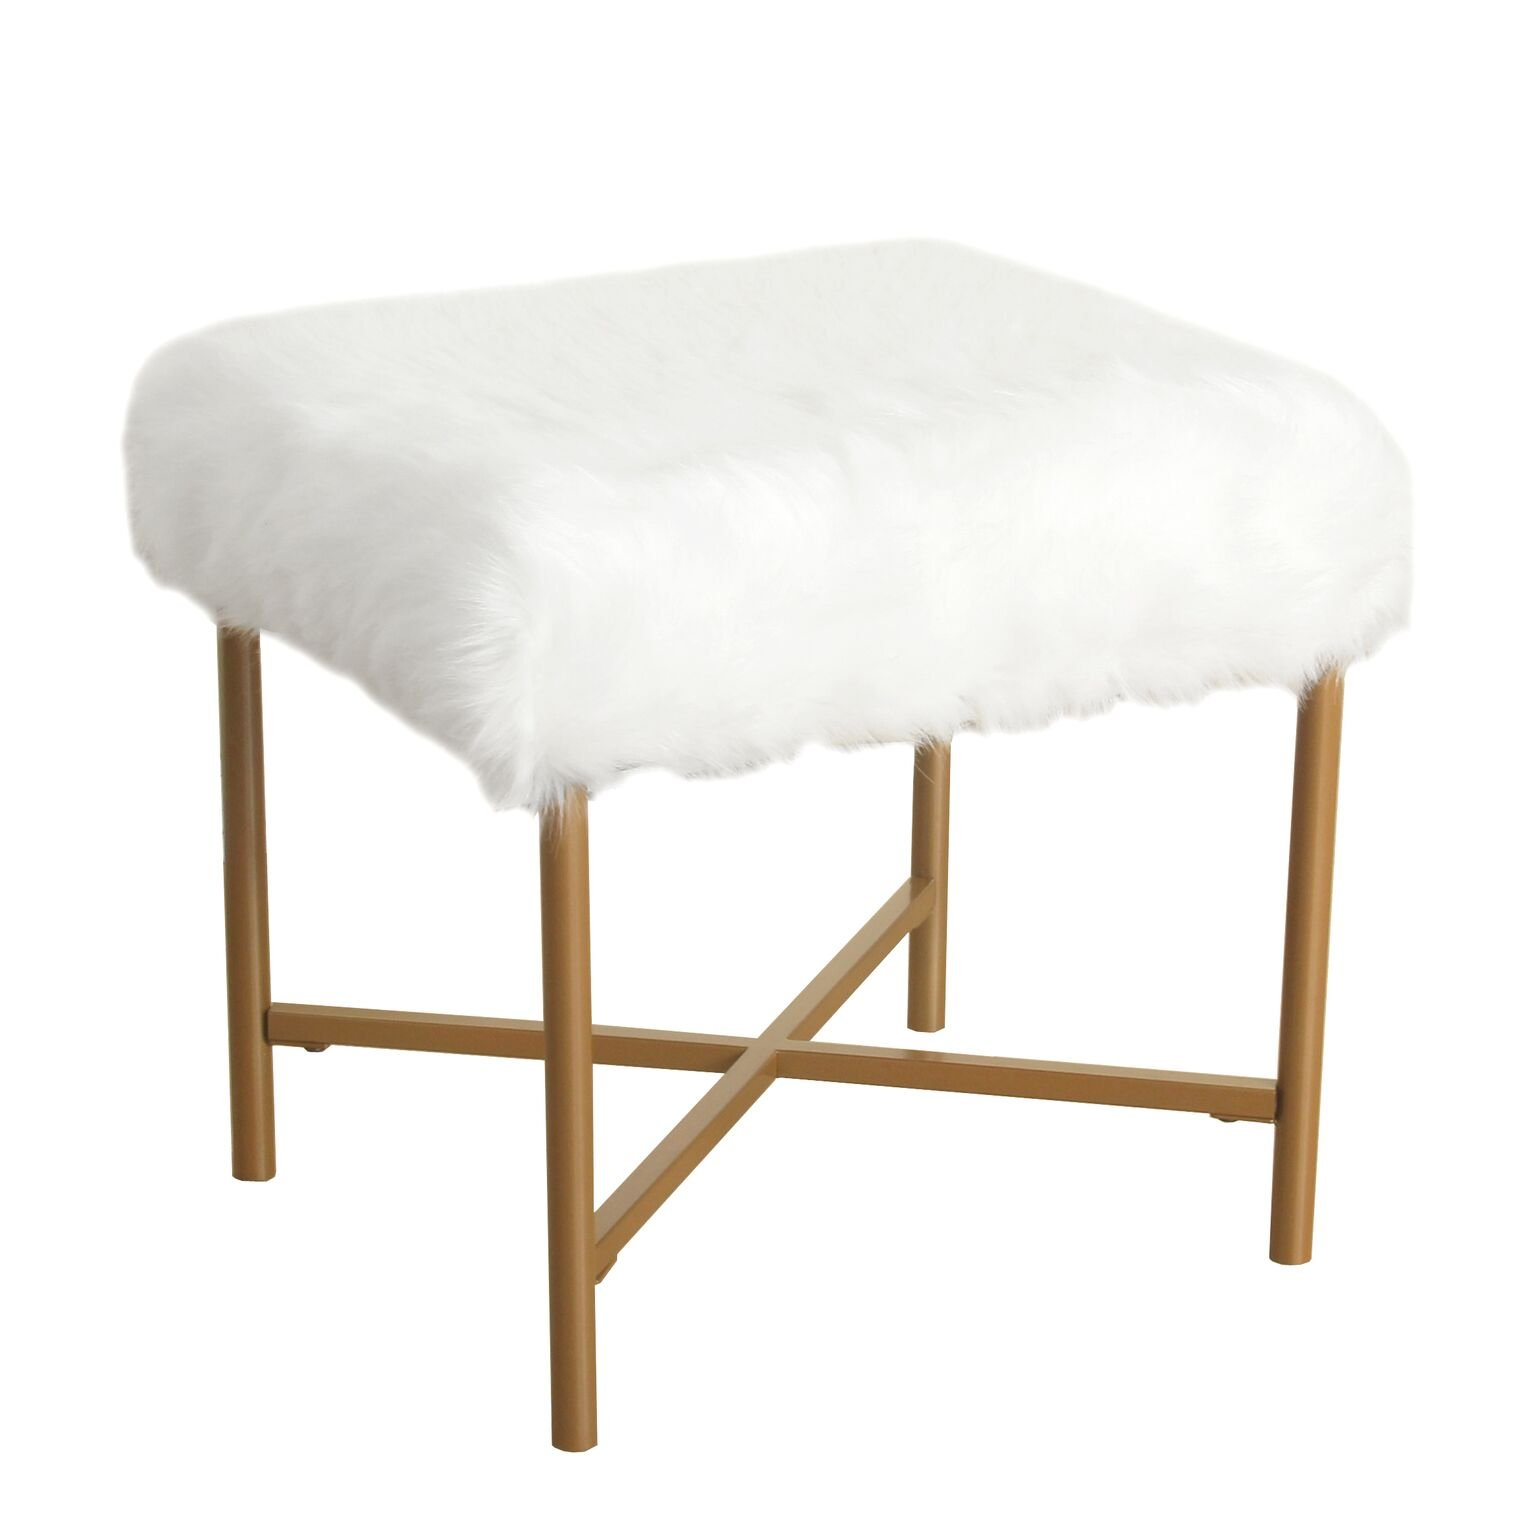 HomePop Faux Fur Square  Stool with Metal Legs, White by HomePop